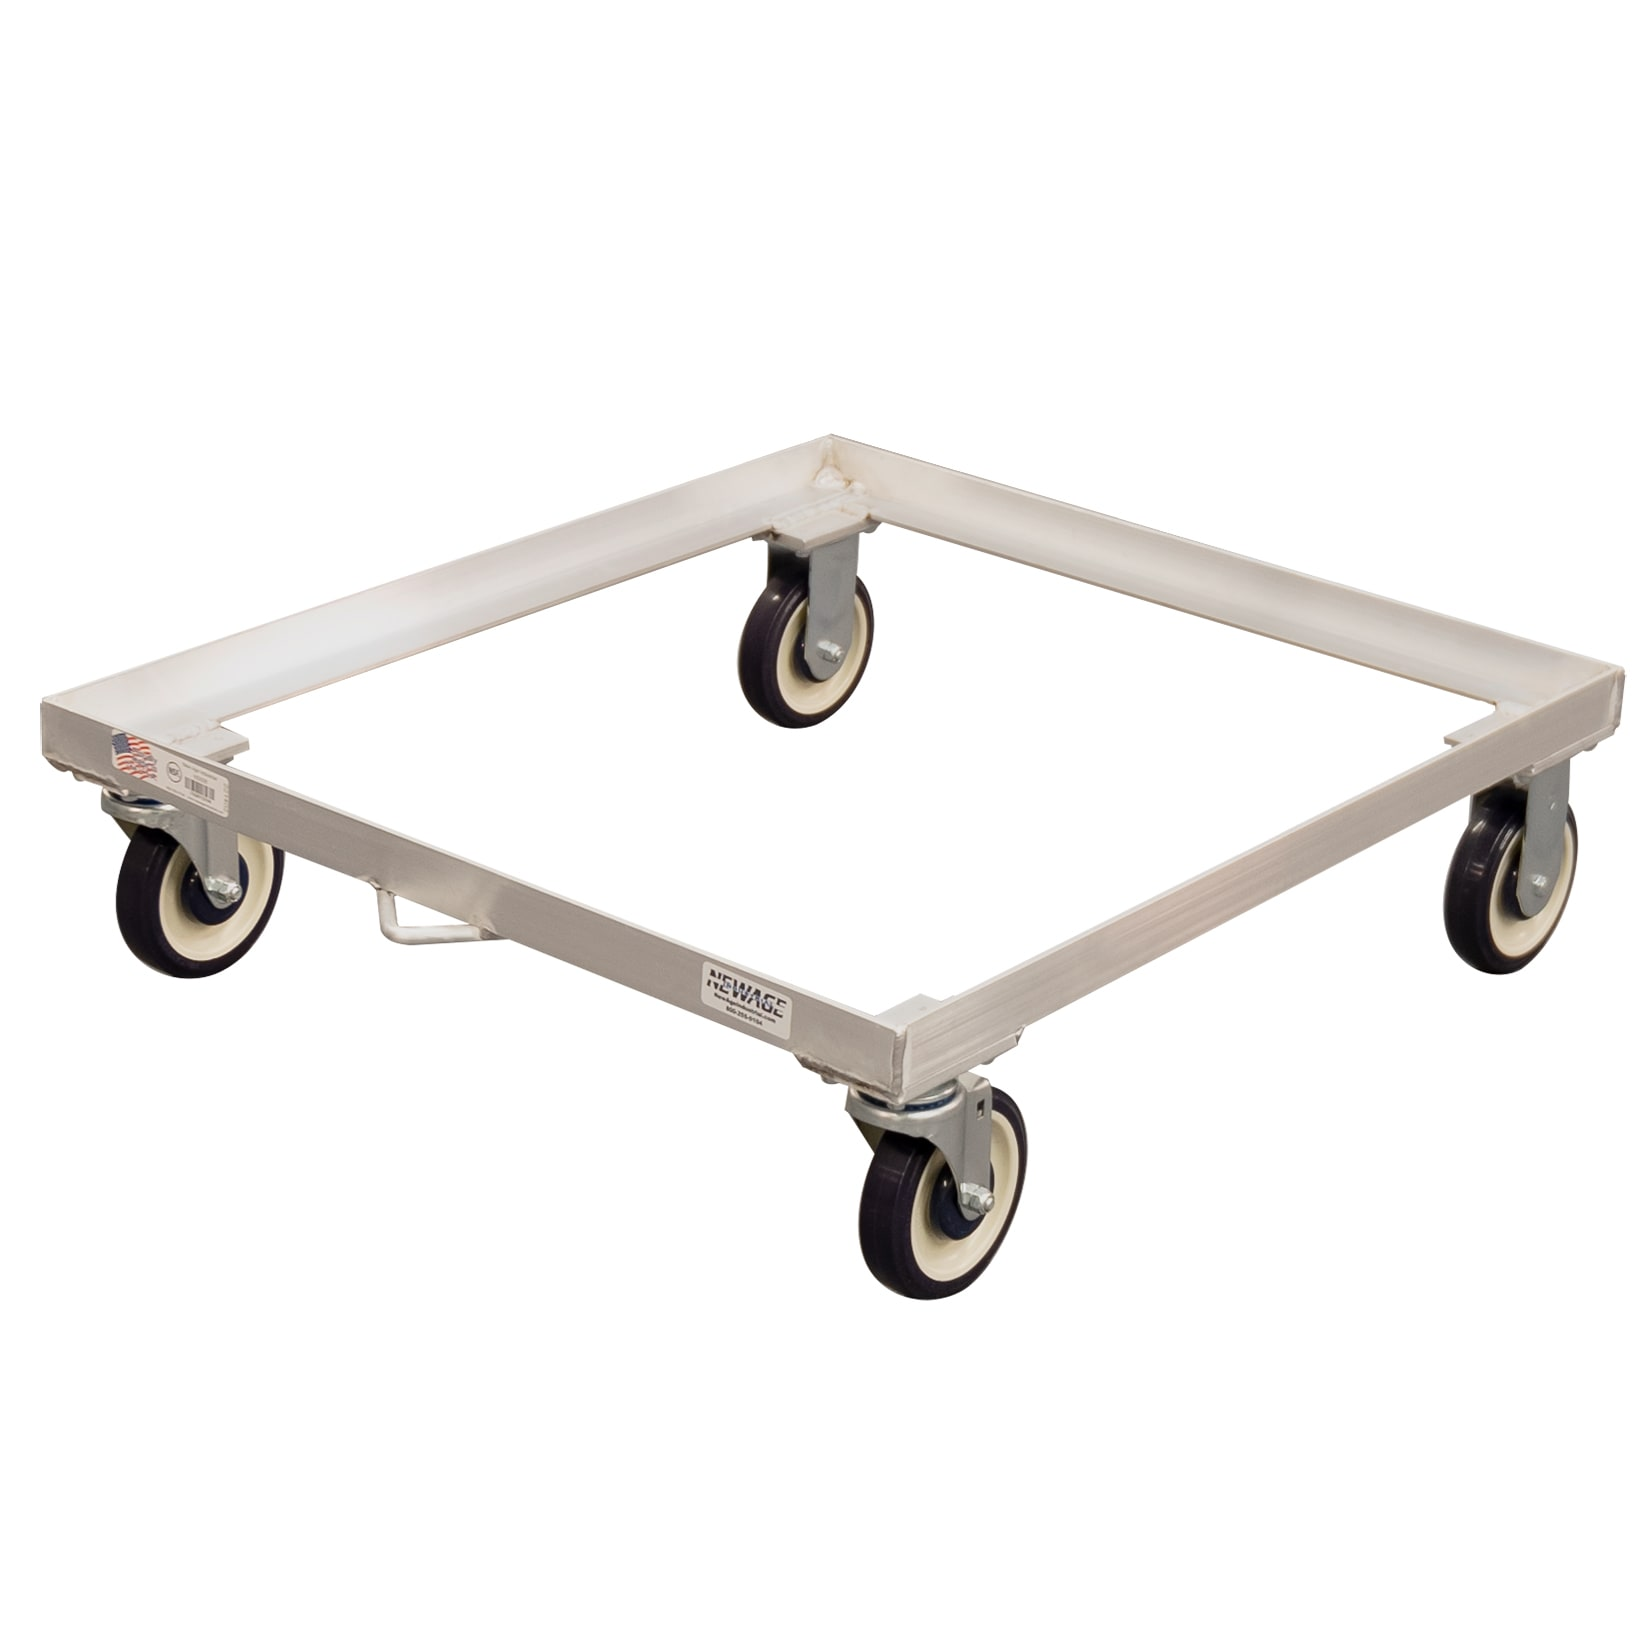 New Age NS926 Dolly for Crisping Baskets